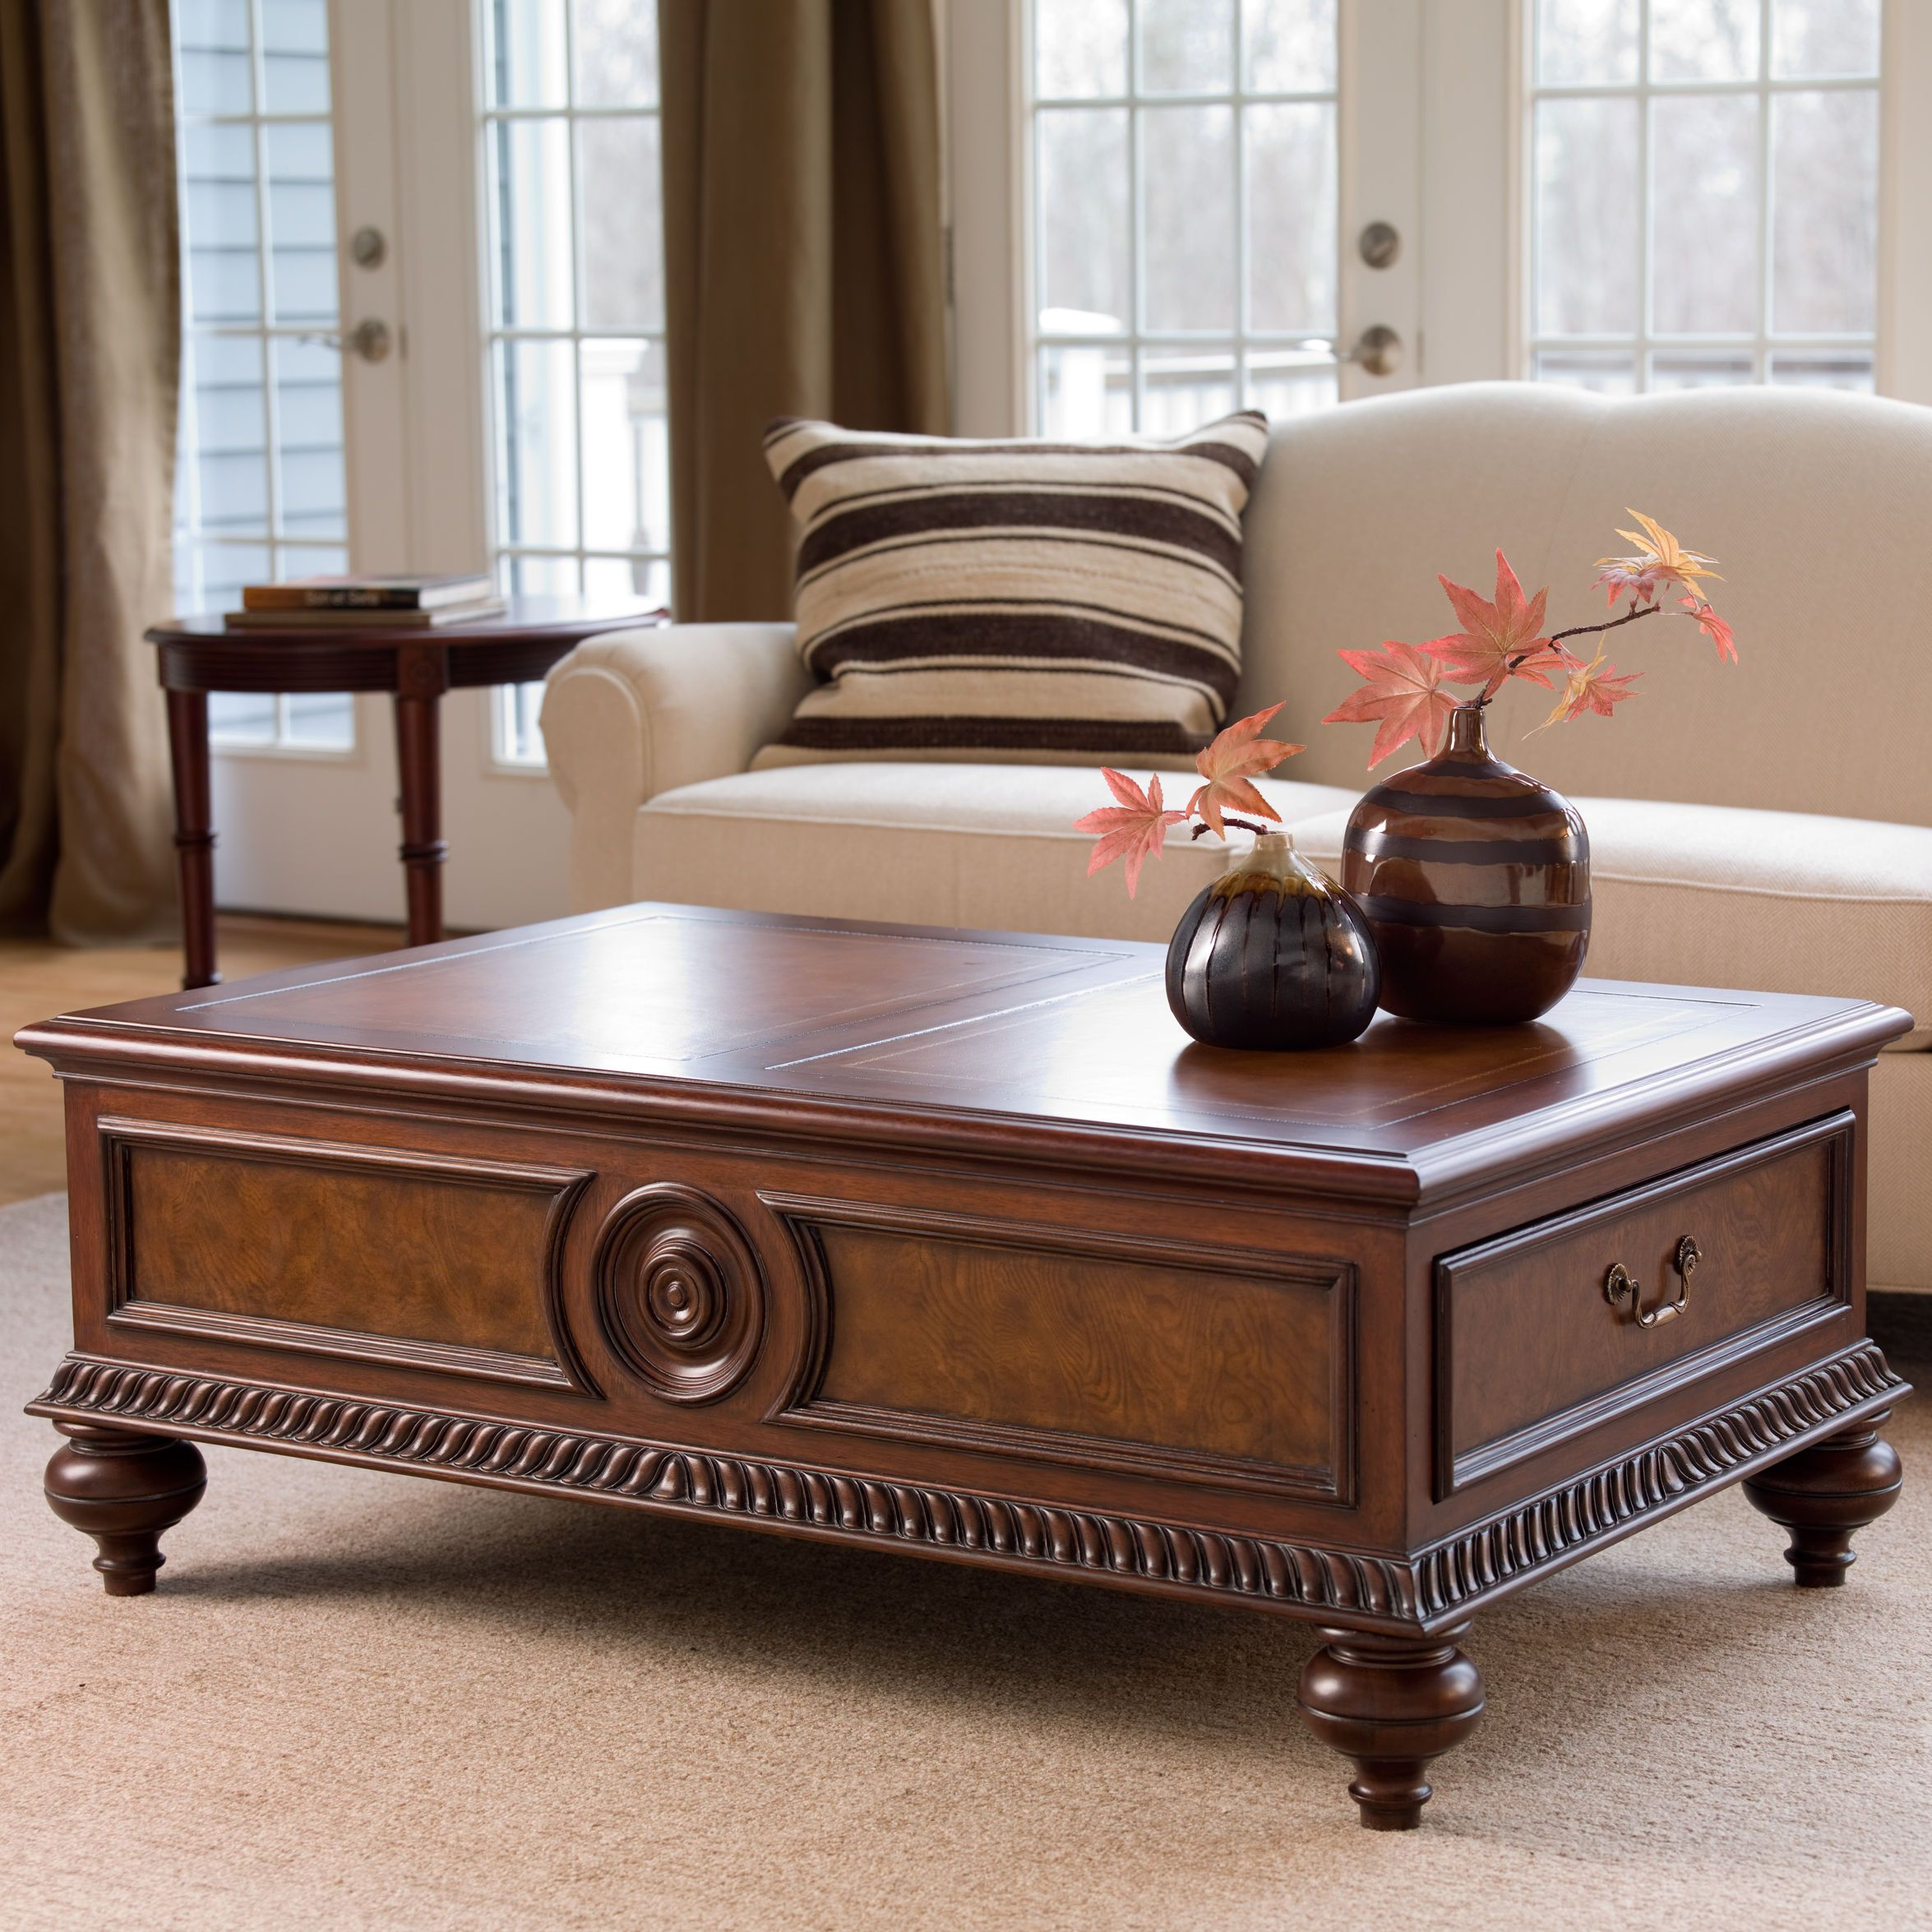 Morley Coffee Table Ethan Allen Us Coffee Table Living Room